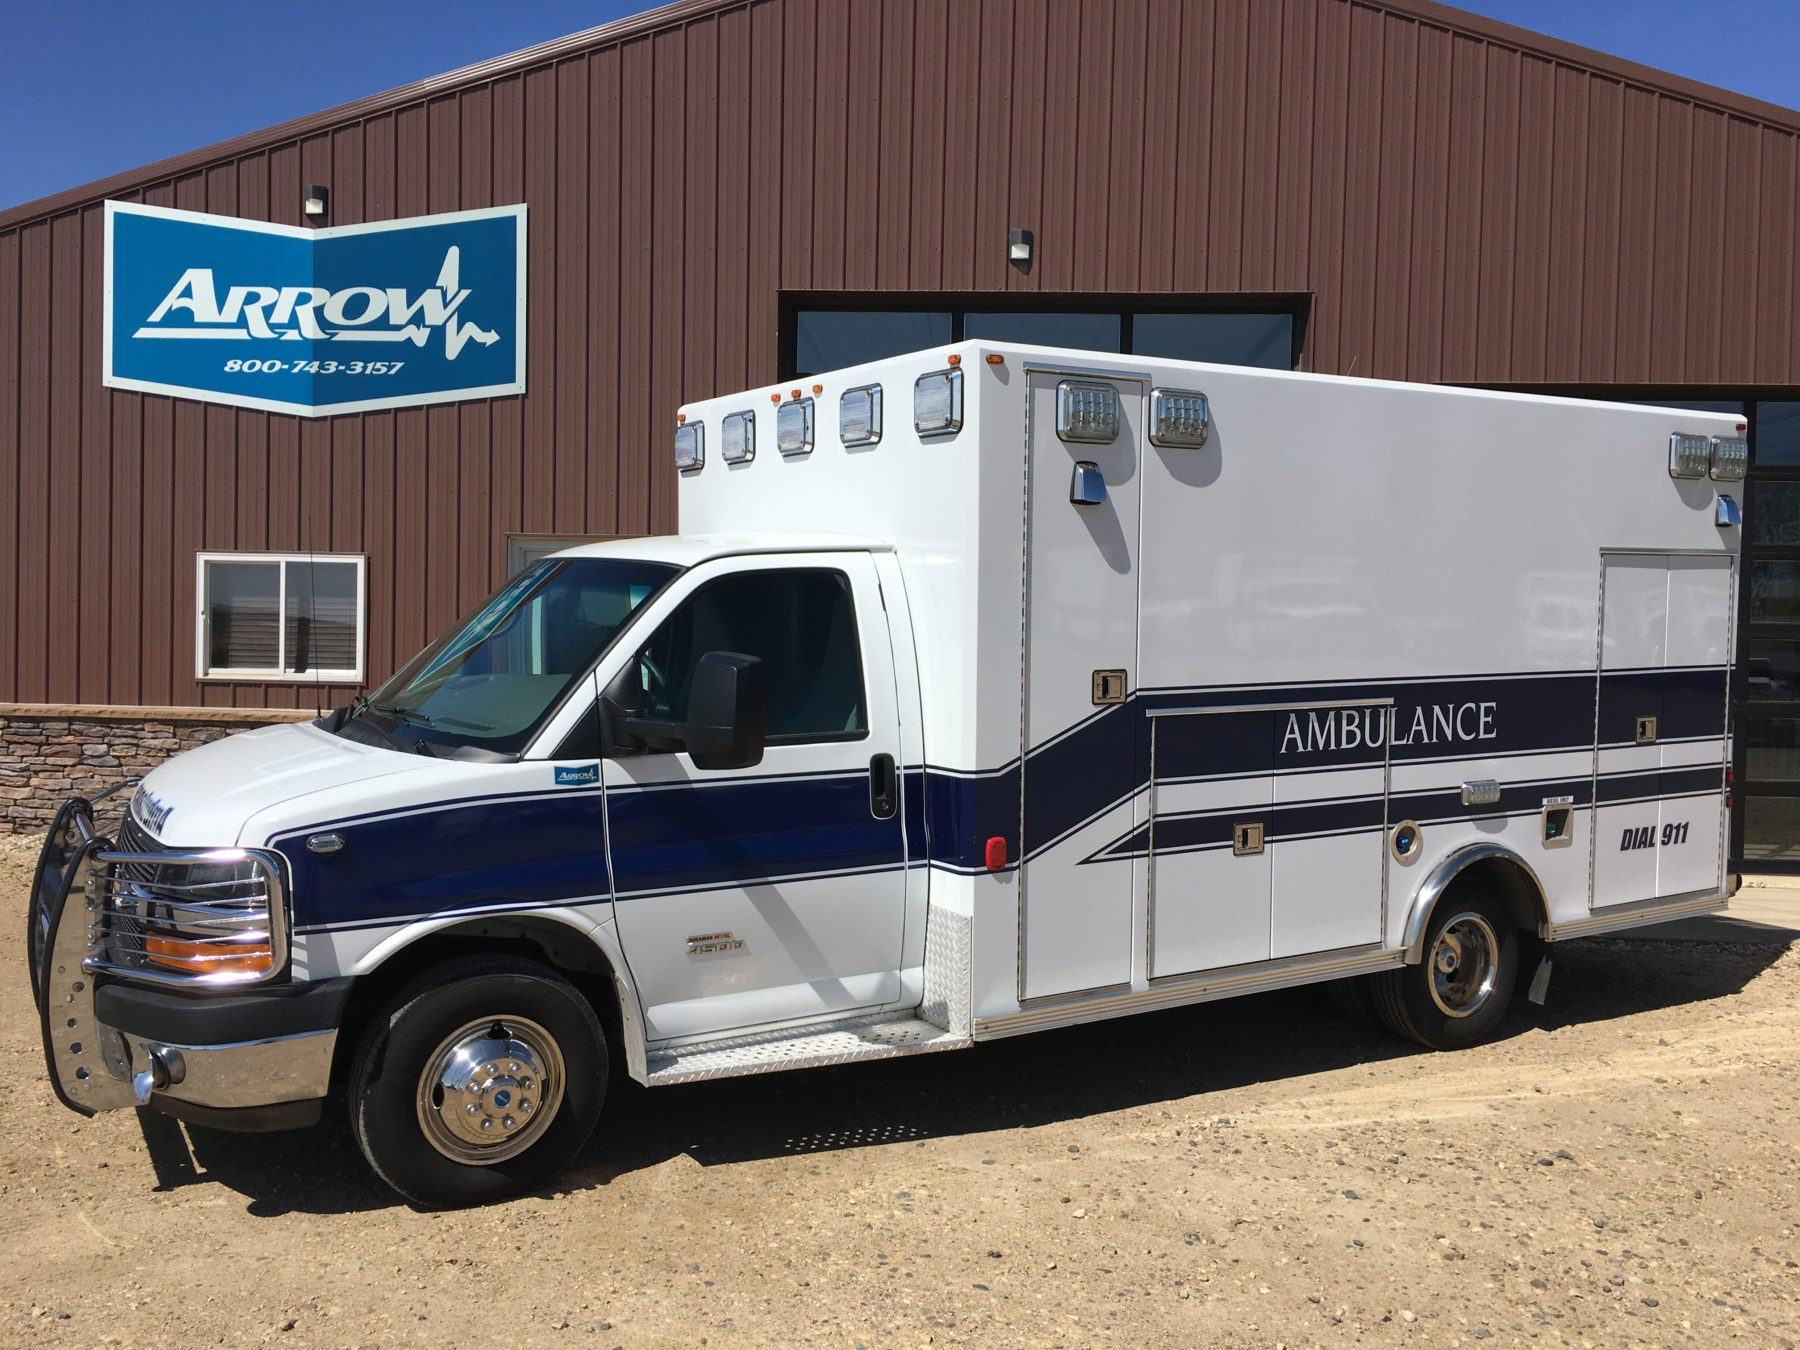 2014 Chevrolet G4500 Type 3 Ambulance For Sale – Picture 1